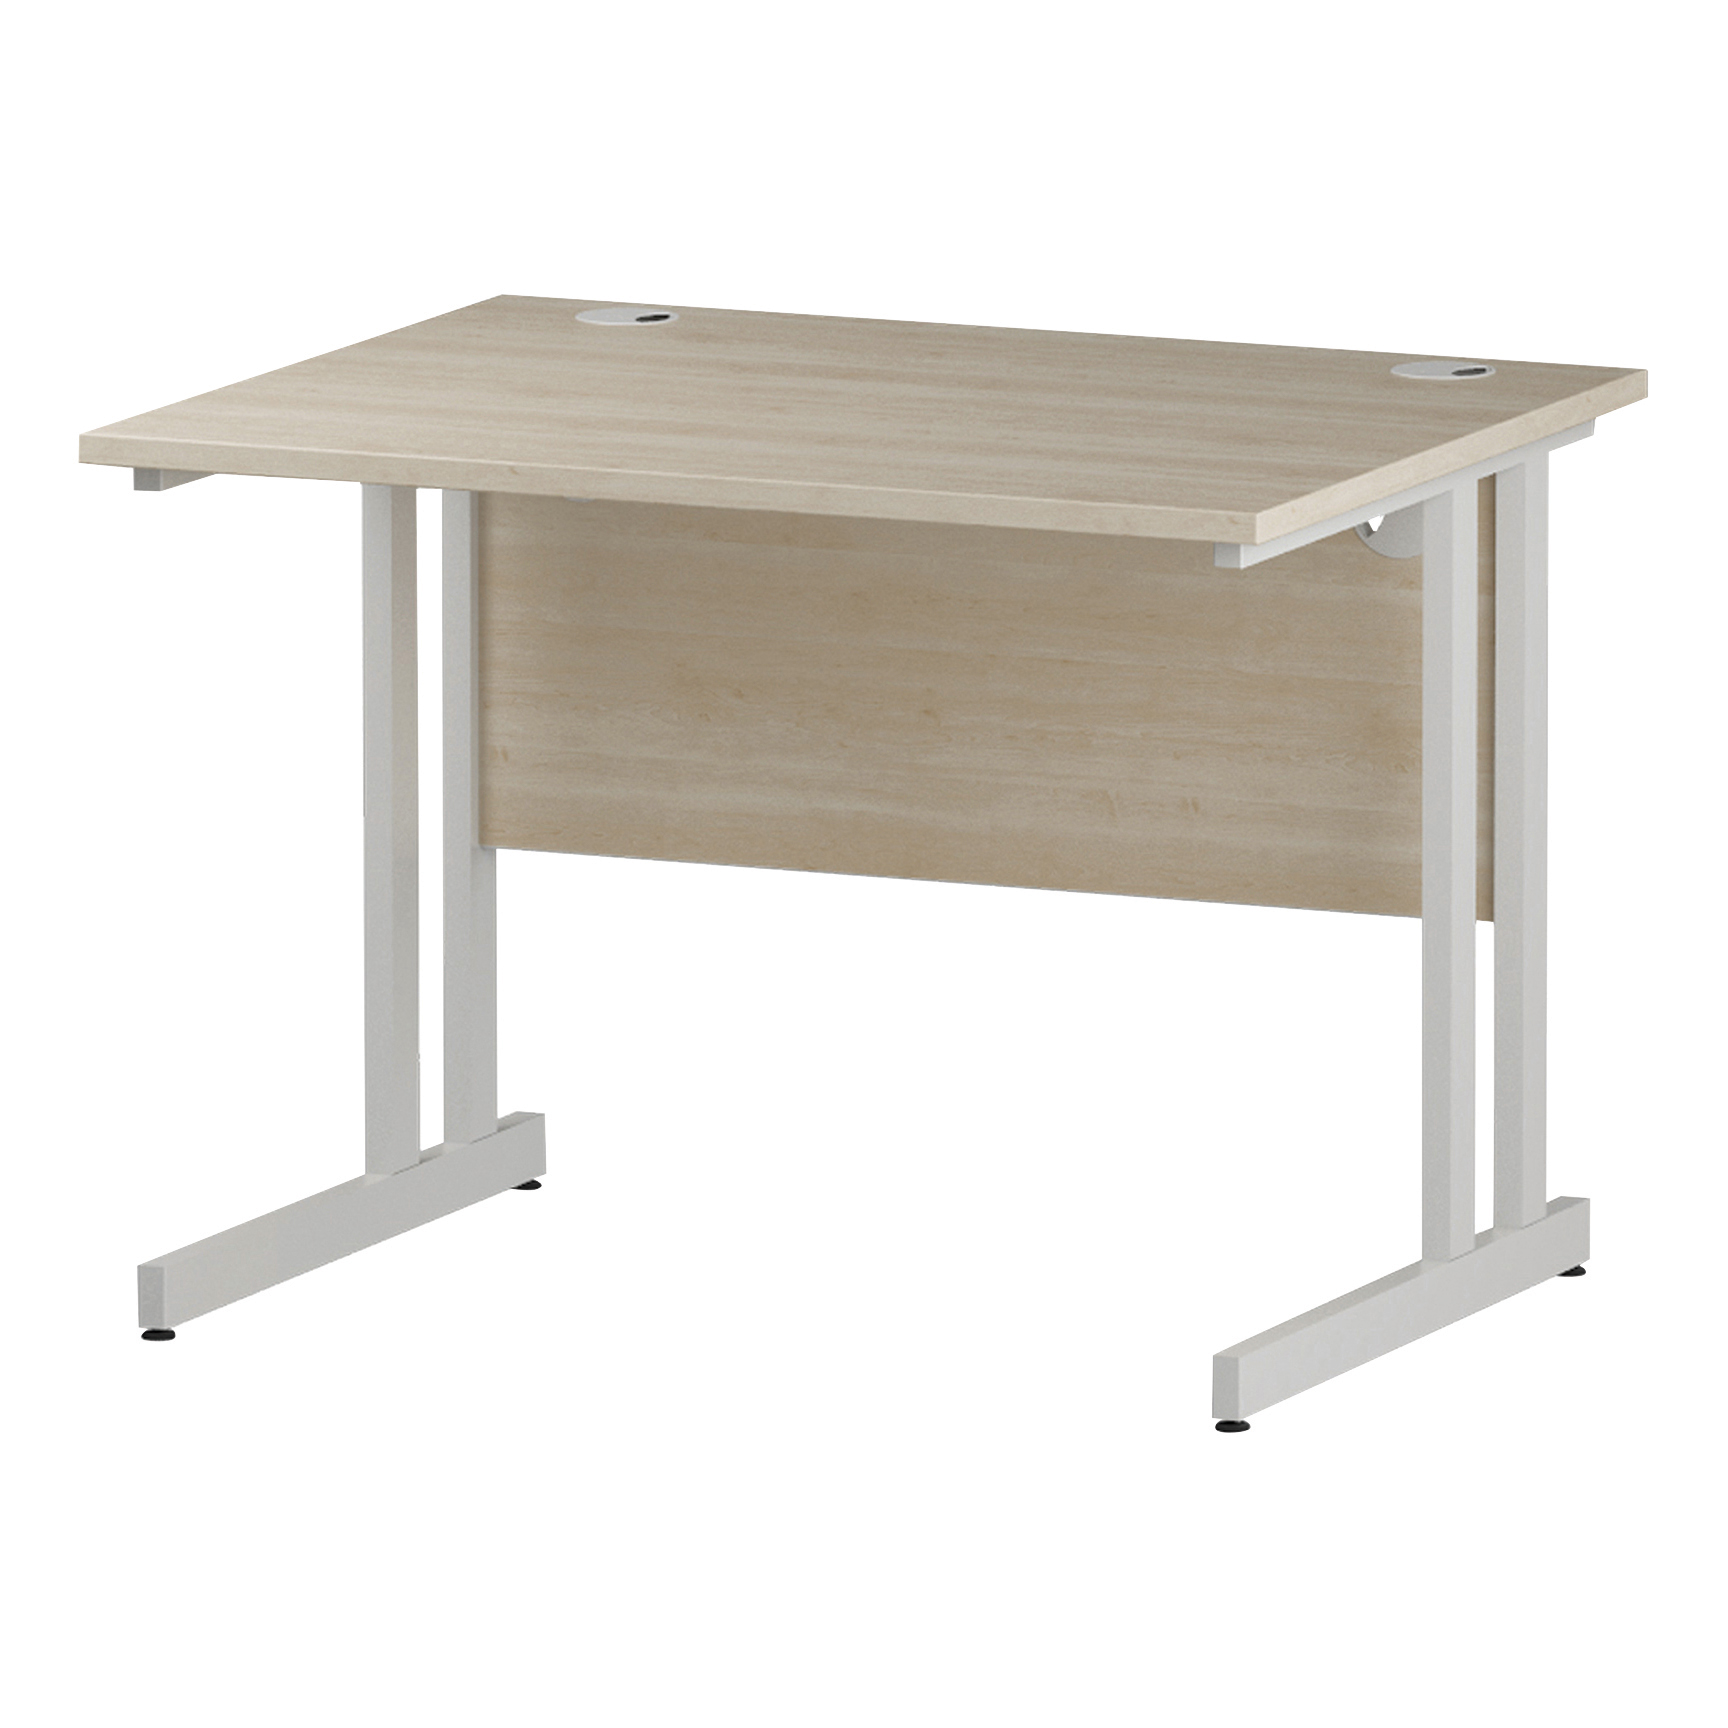 Trexus Rectangular Desk White Cantilever Leg 1000x800mm Maple Ref I002416